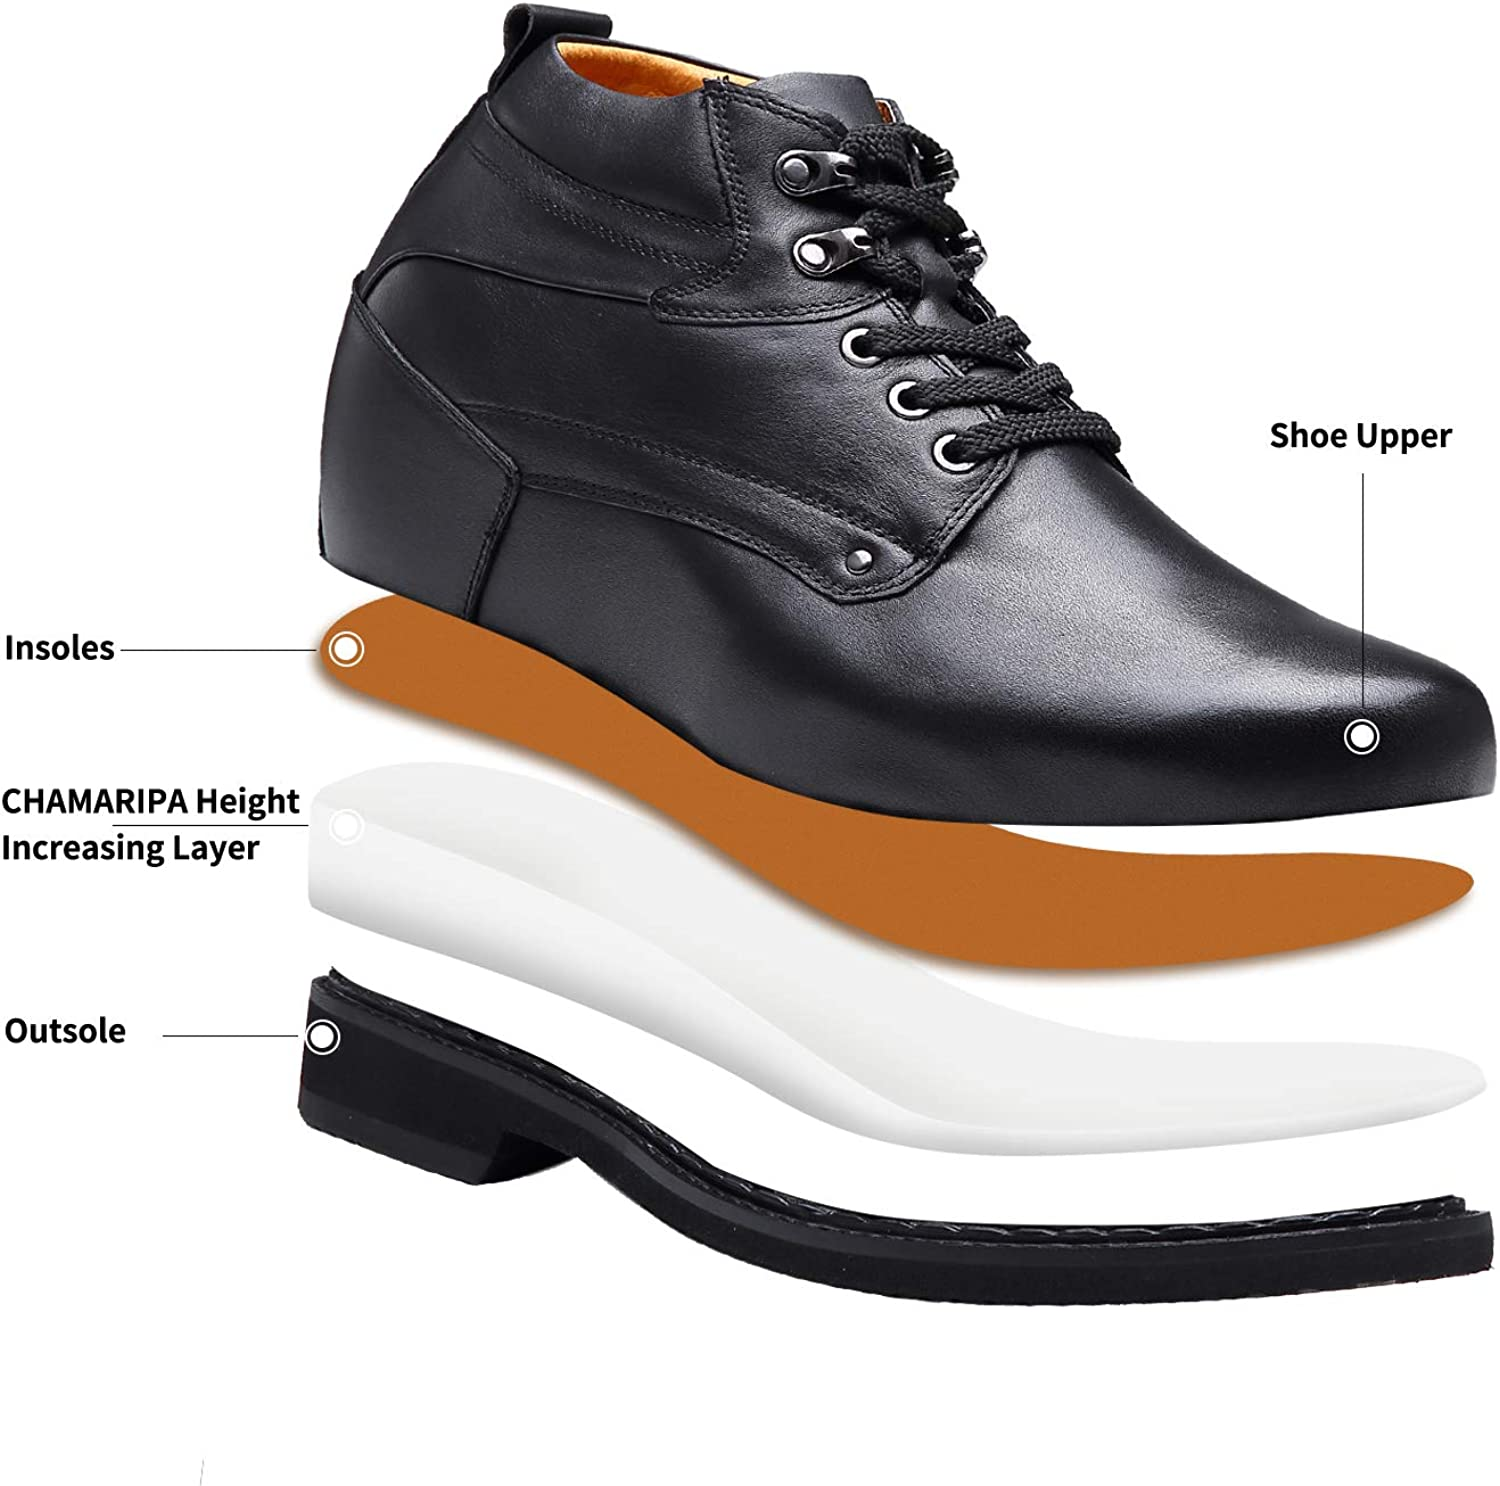 CHAMARIPA Men/'s Height Increasing Elevator Shoes Leather Boots Invisible Elevated 5.12 inch Taller Brown Black X4101